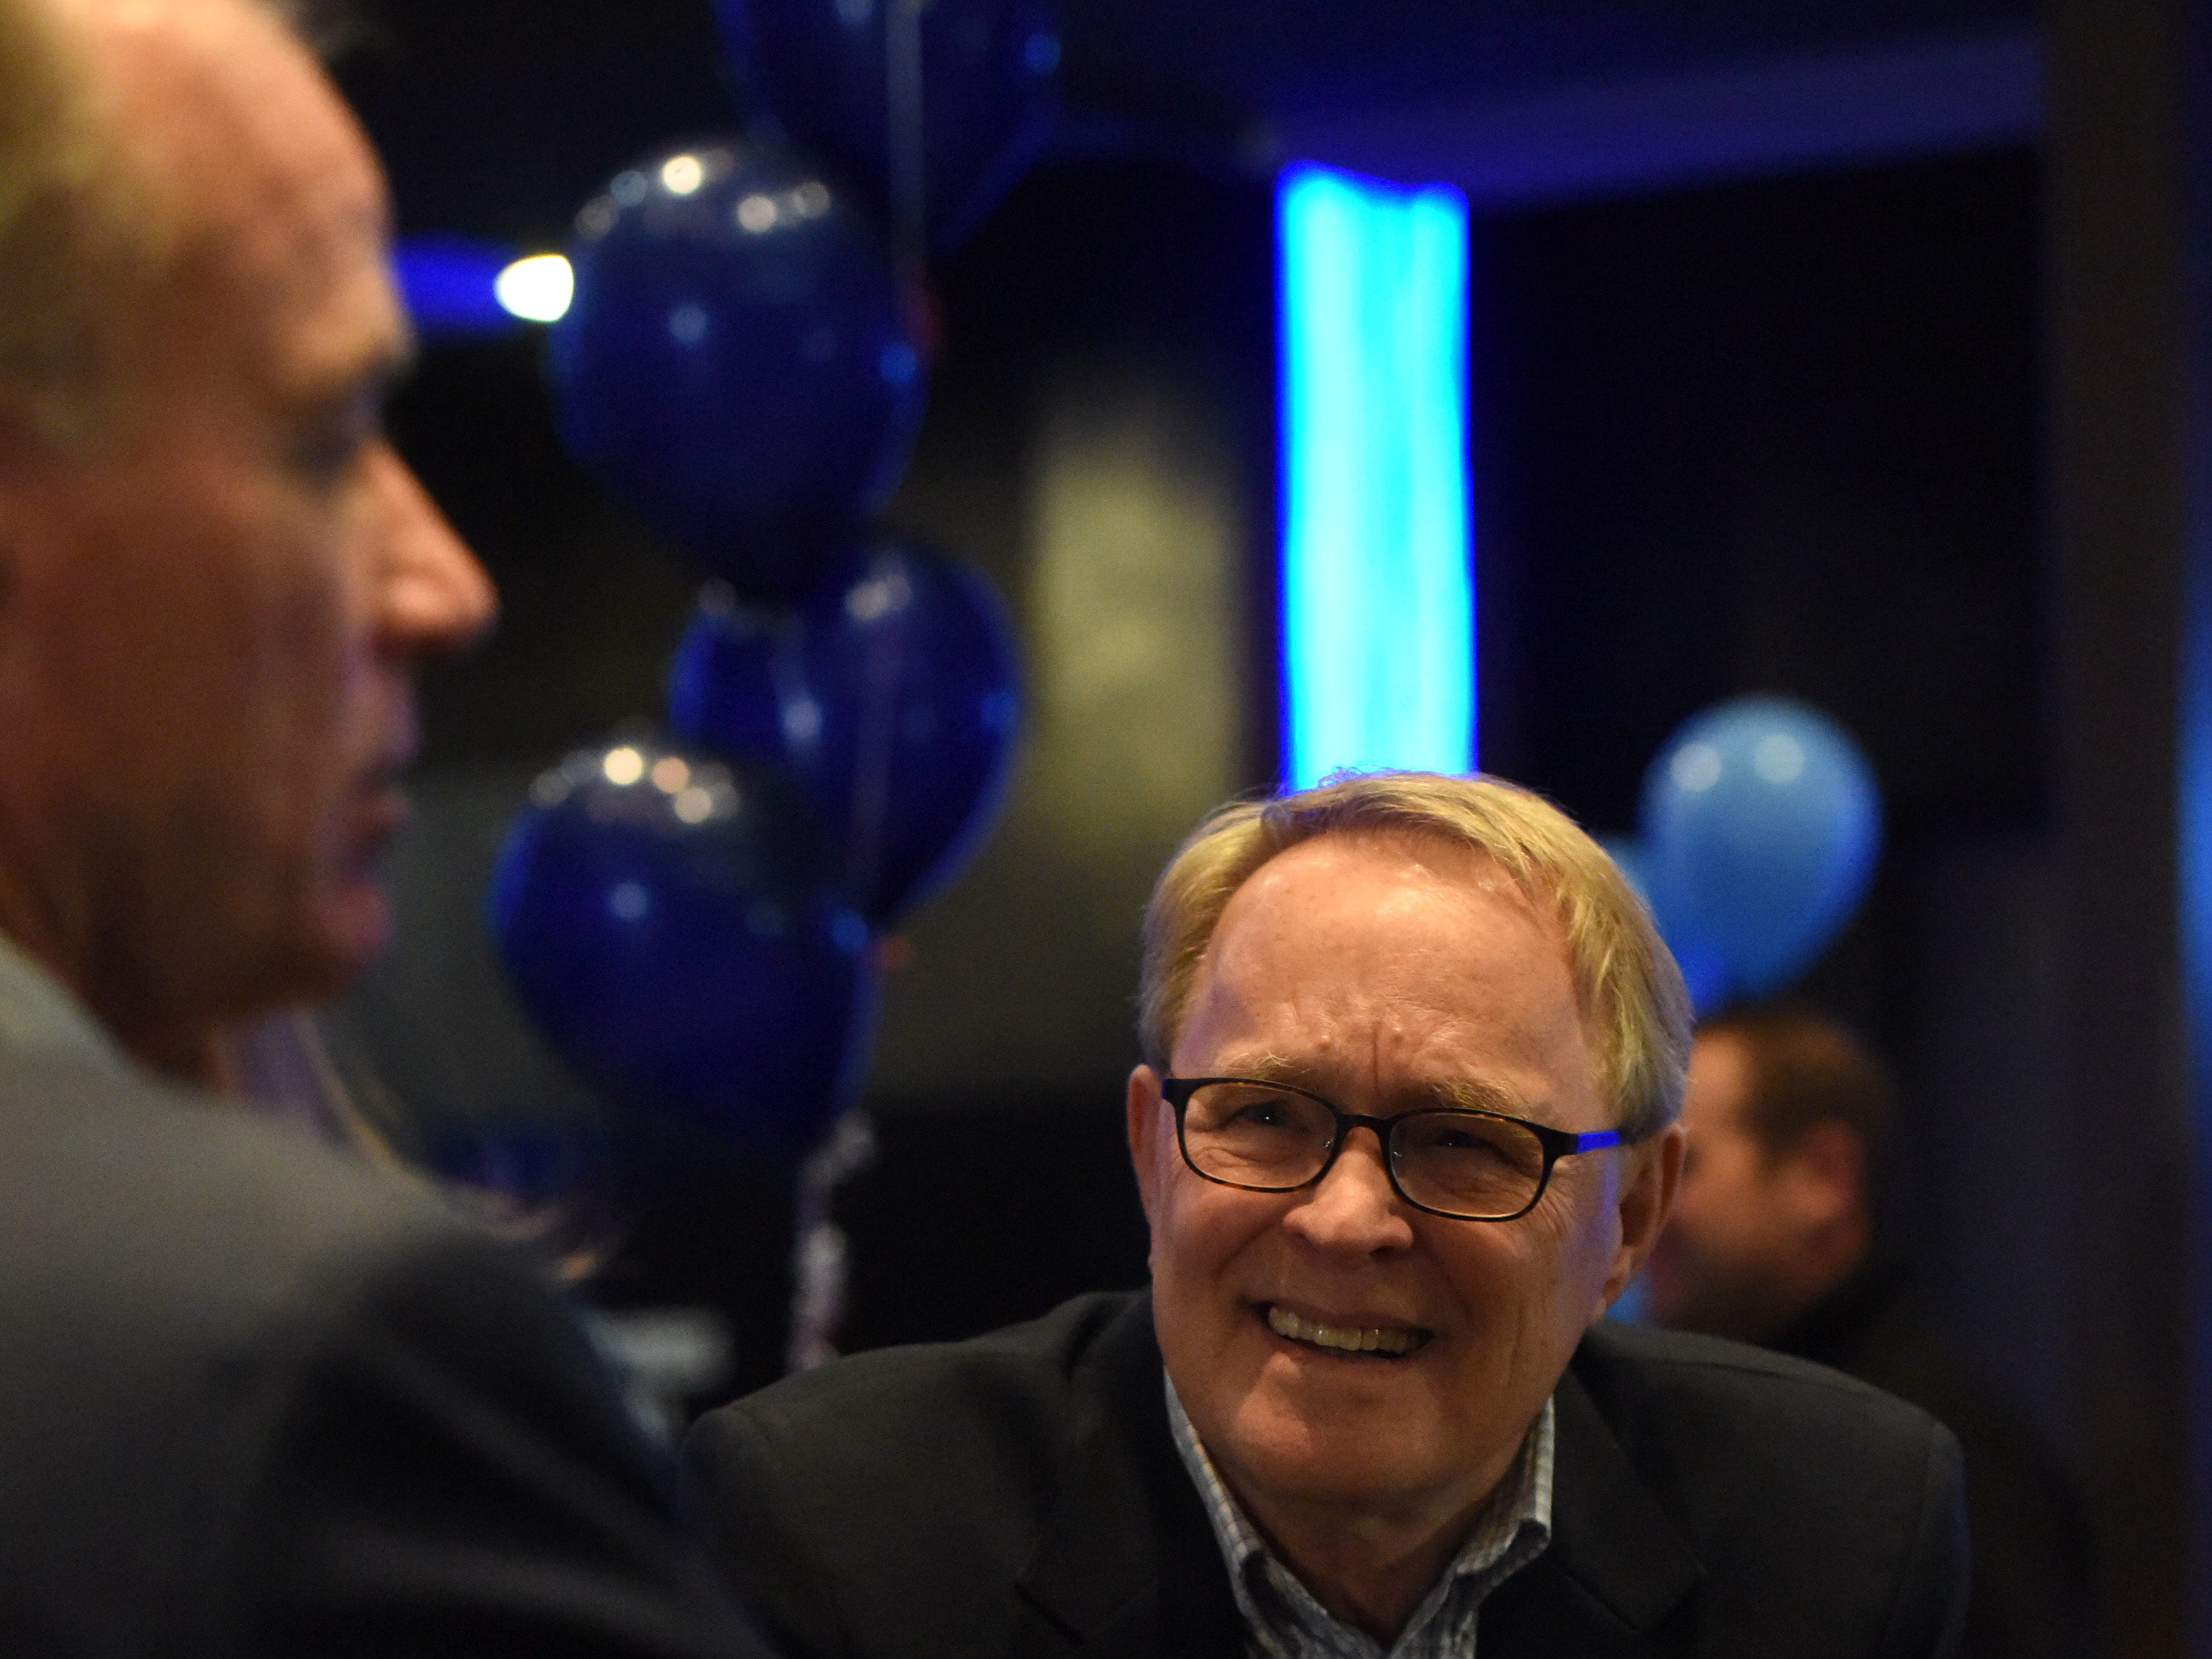 Dennis Olson attends the Democratic night party, Tuesday, Nov. 6, 2018 at The District in Sioux Falls, S.D.